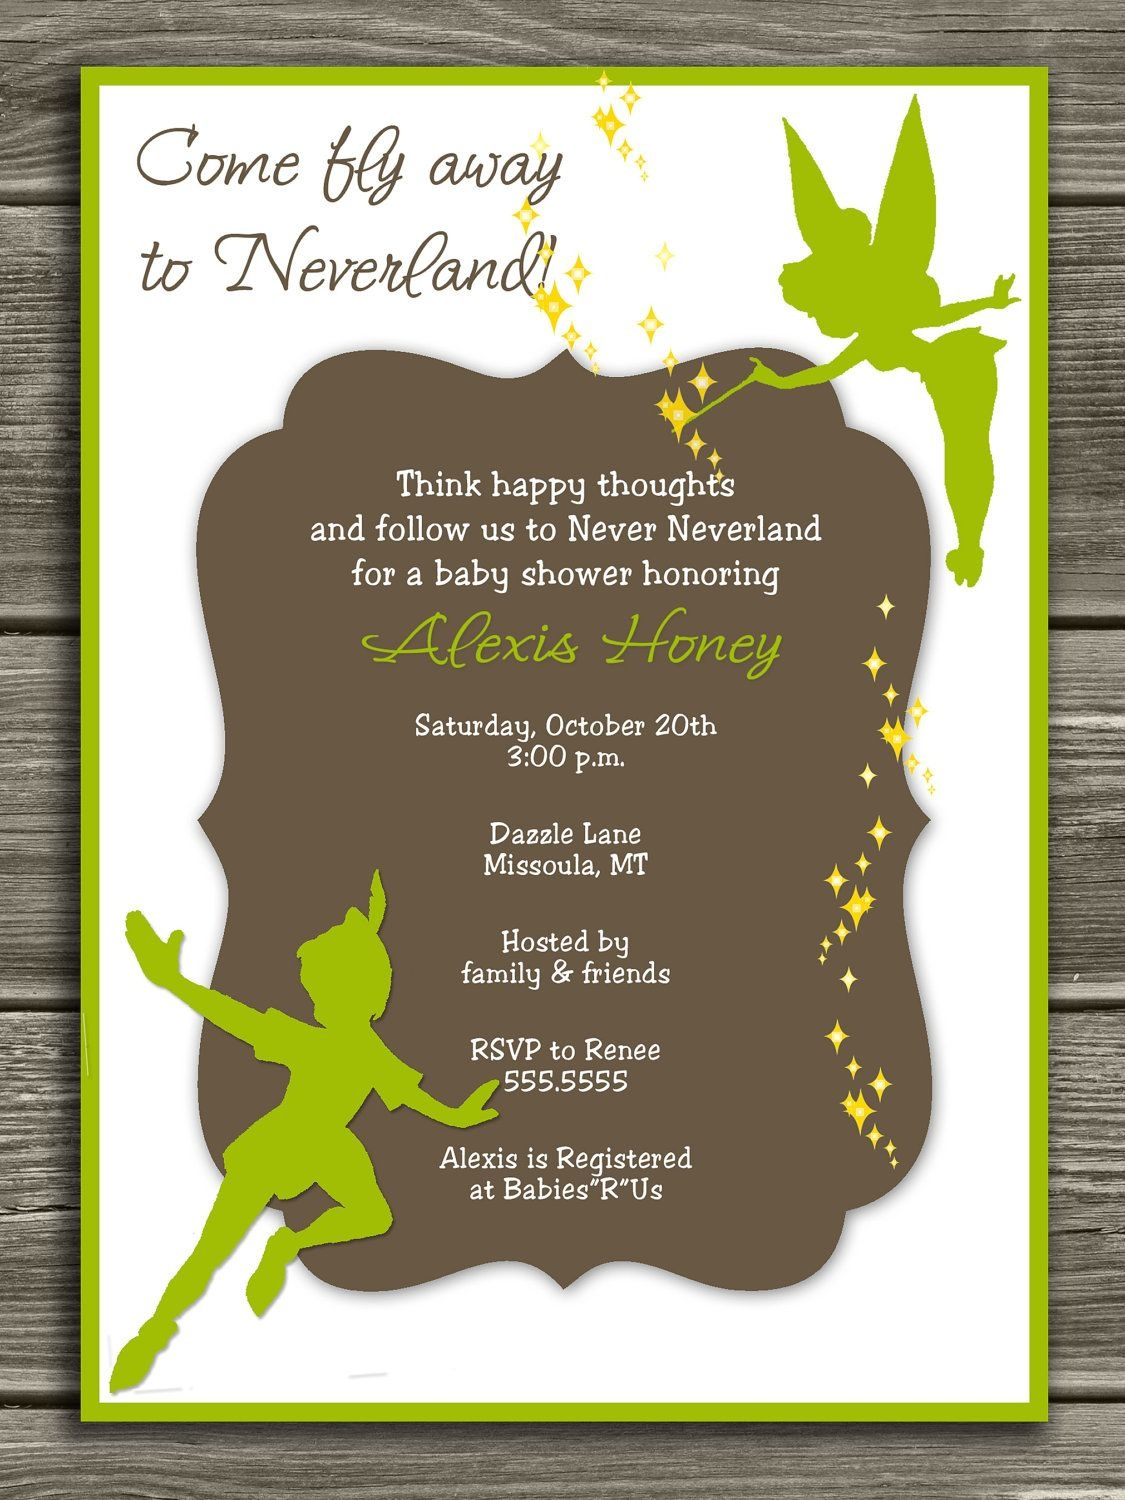 Neverland Baby Shower Invitation - Free Thank You Card Included - Free Printable Tinkerbell Baby Shower Invitations